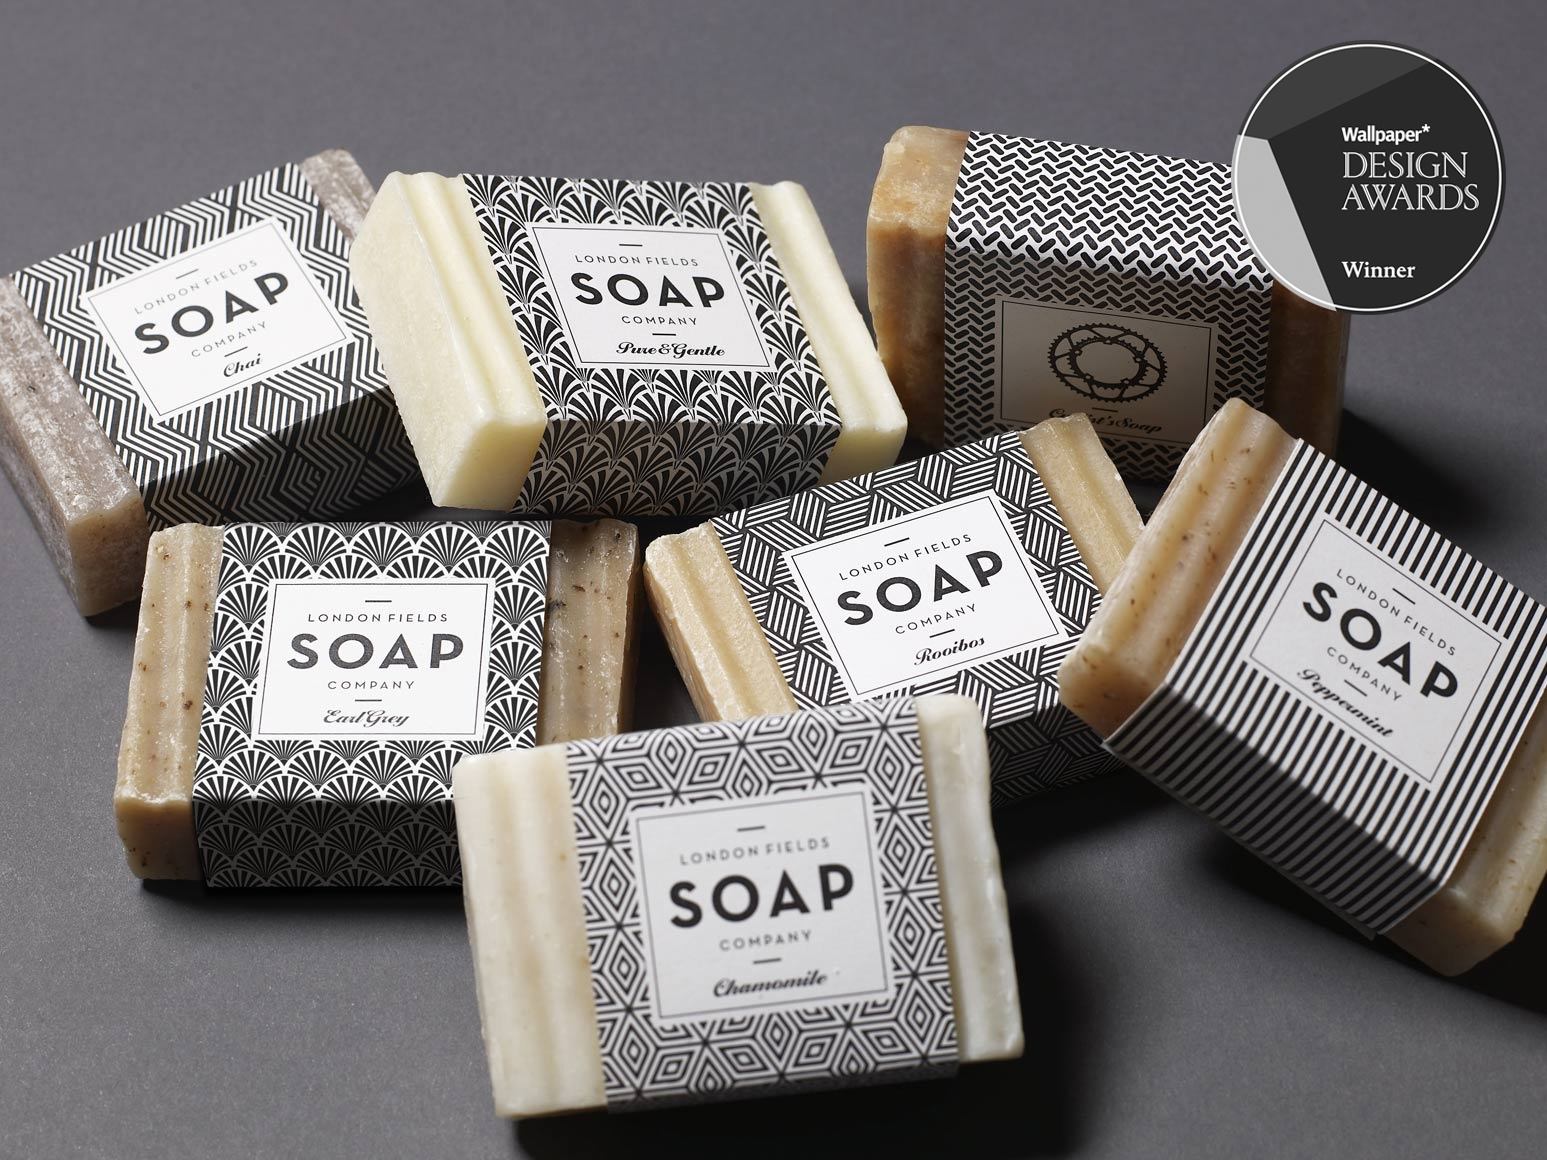 London fields soap company one darnley road branding for Top product design firms